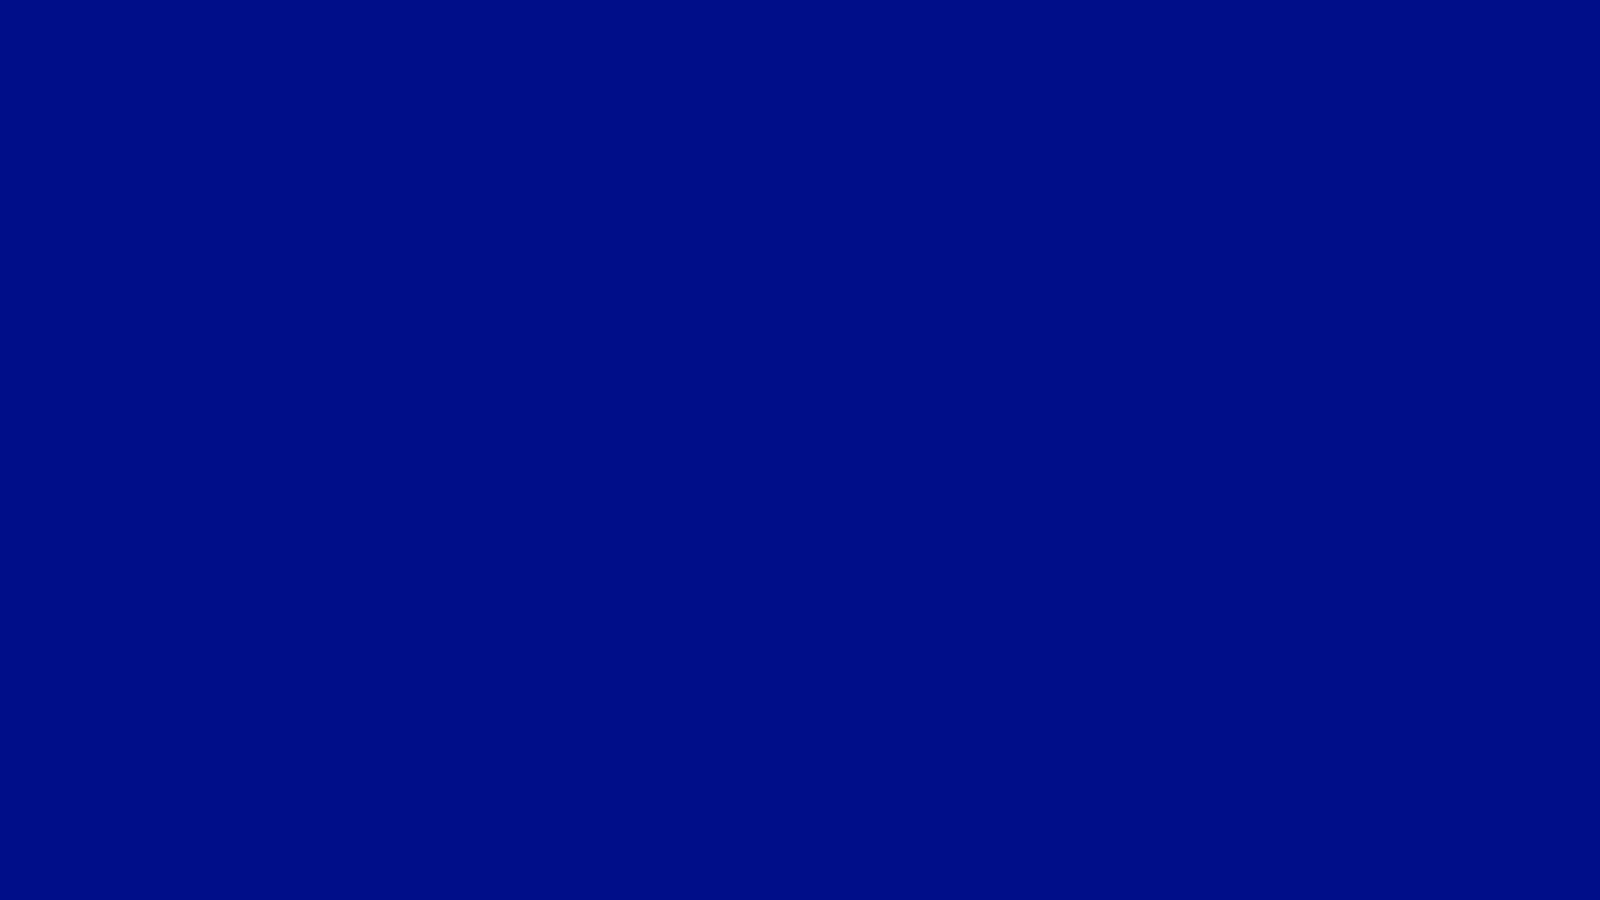 1600x900 phthalo blue solid color background